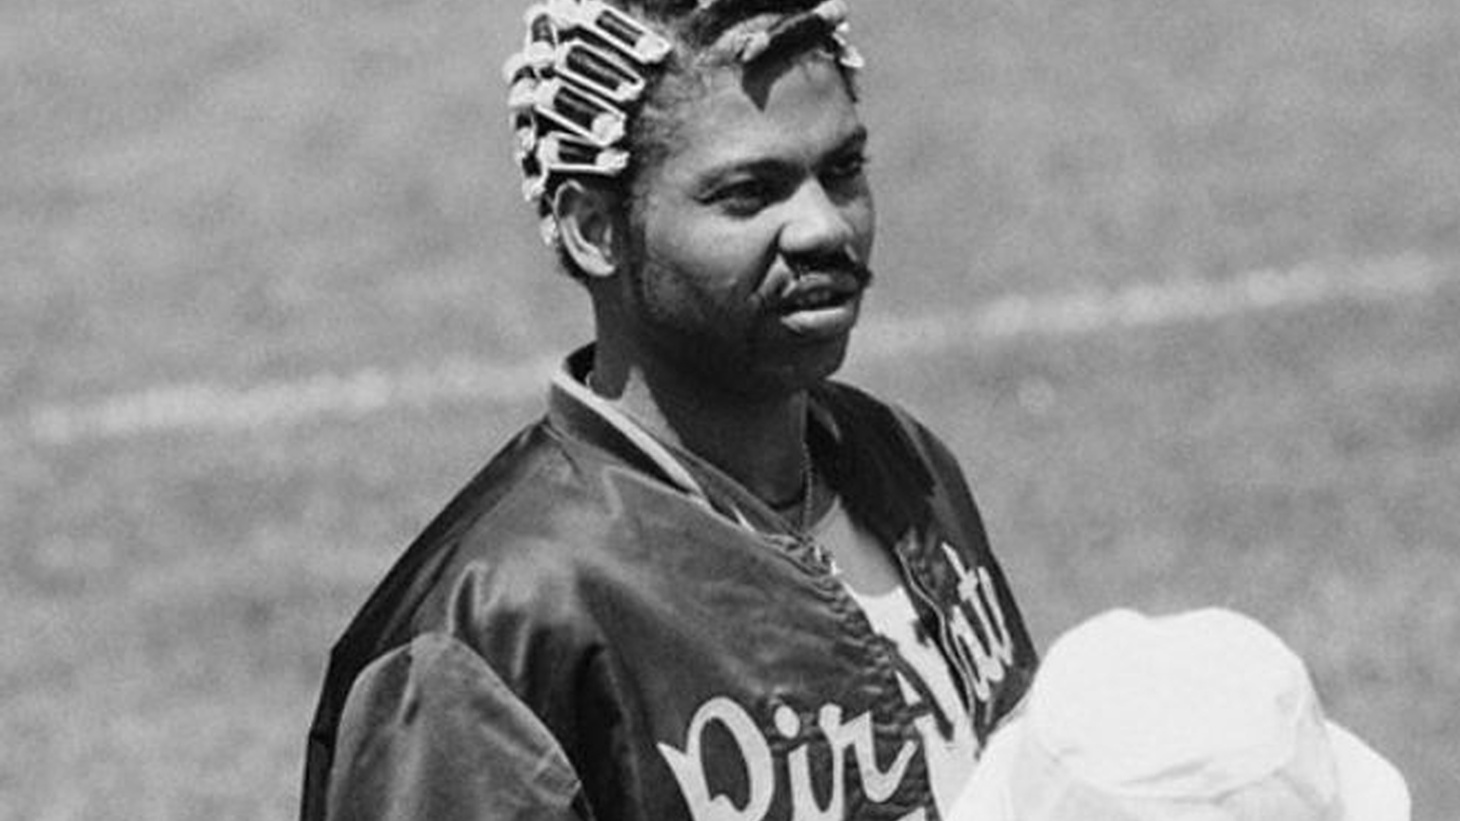 One of the most memorable characters to ever play baseball, Dock Ellis challenged the baseball establishment, pitched a no-hitter on acid, but always had impeccable style.